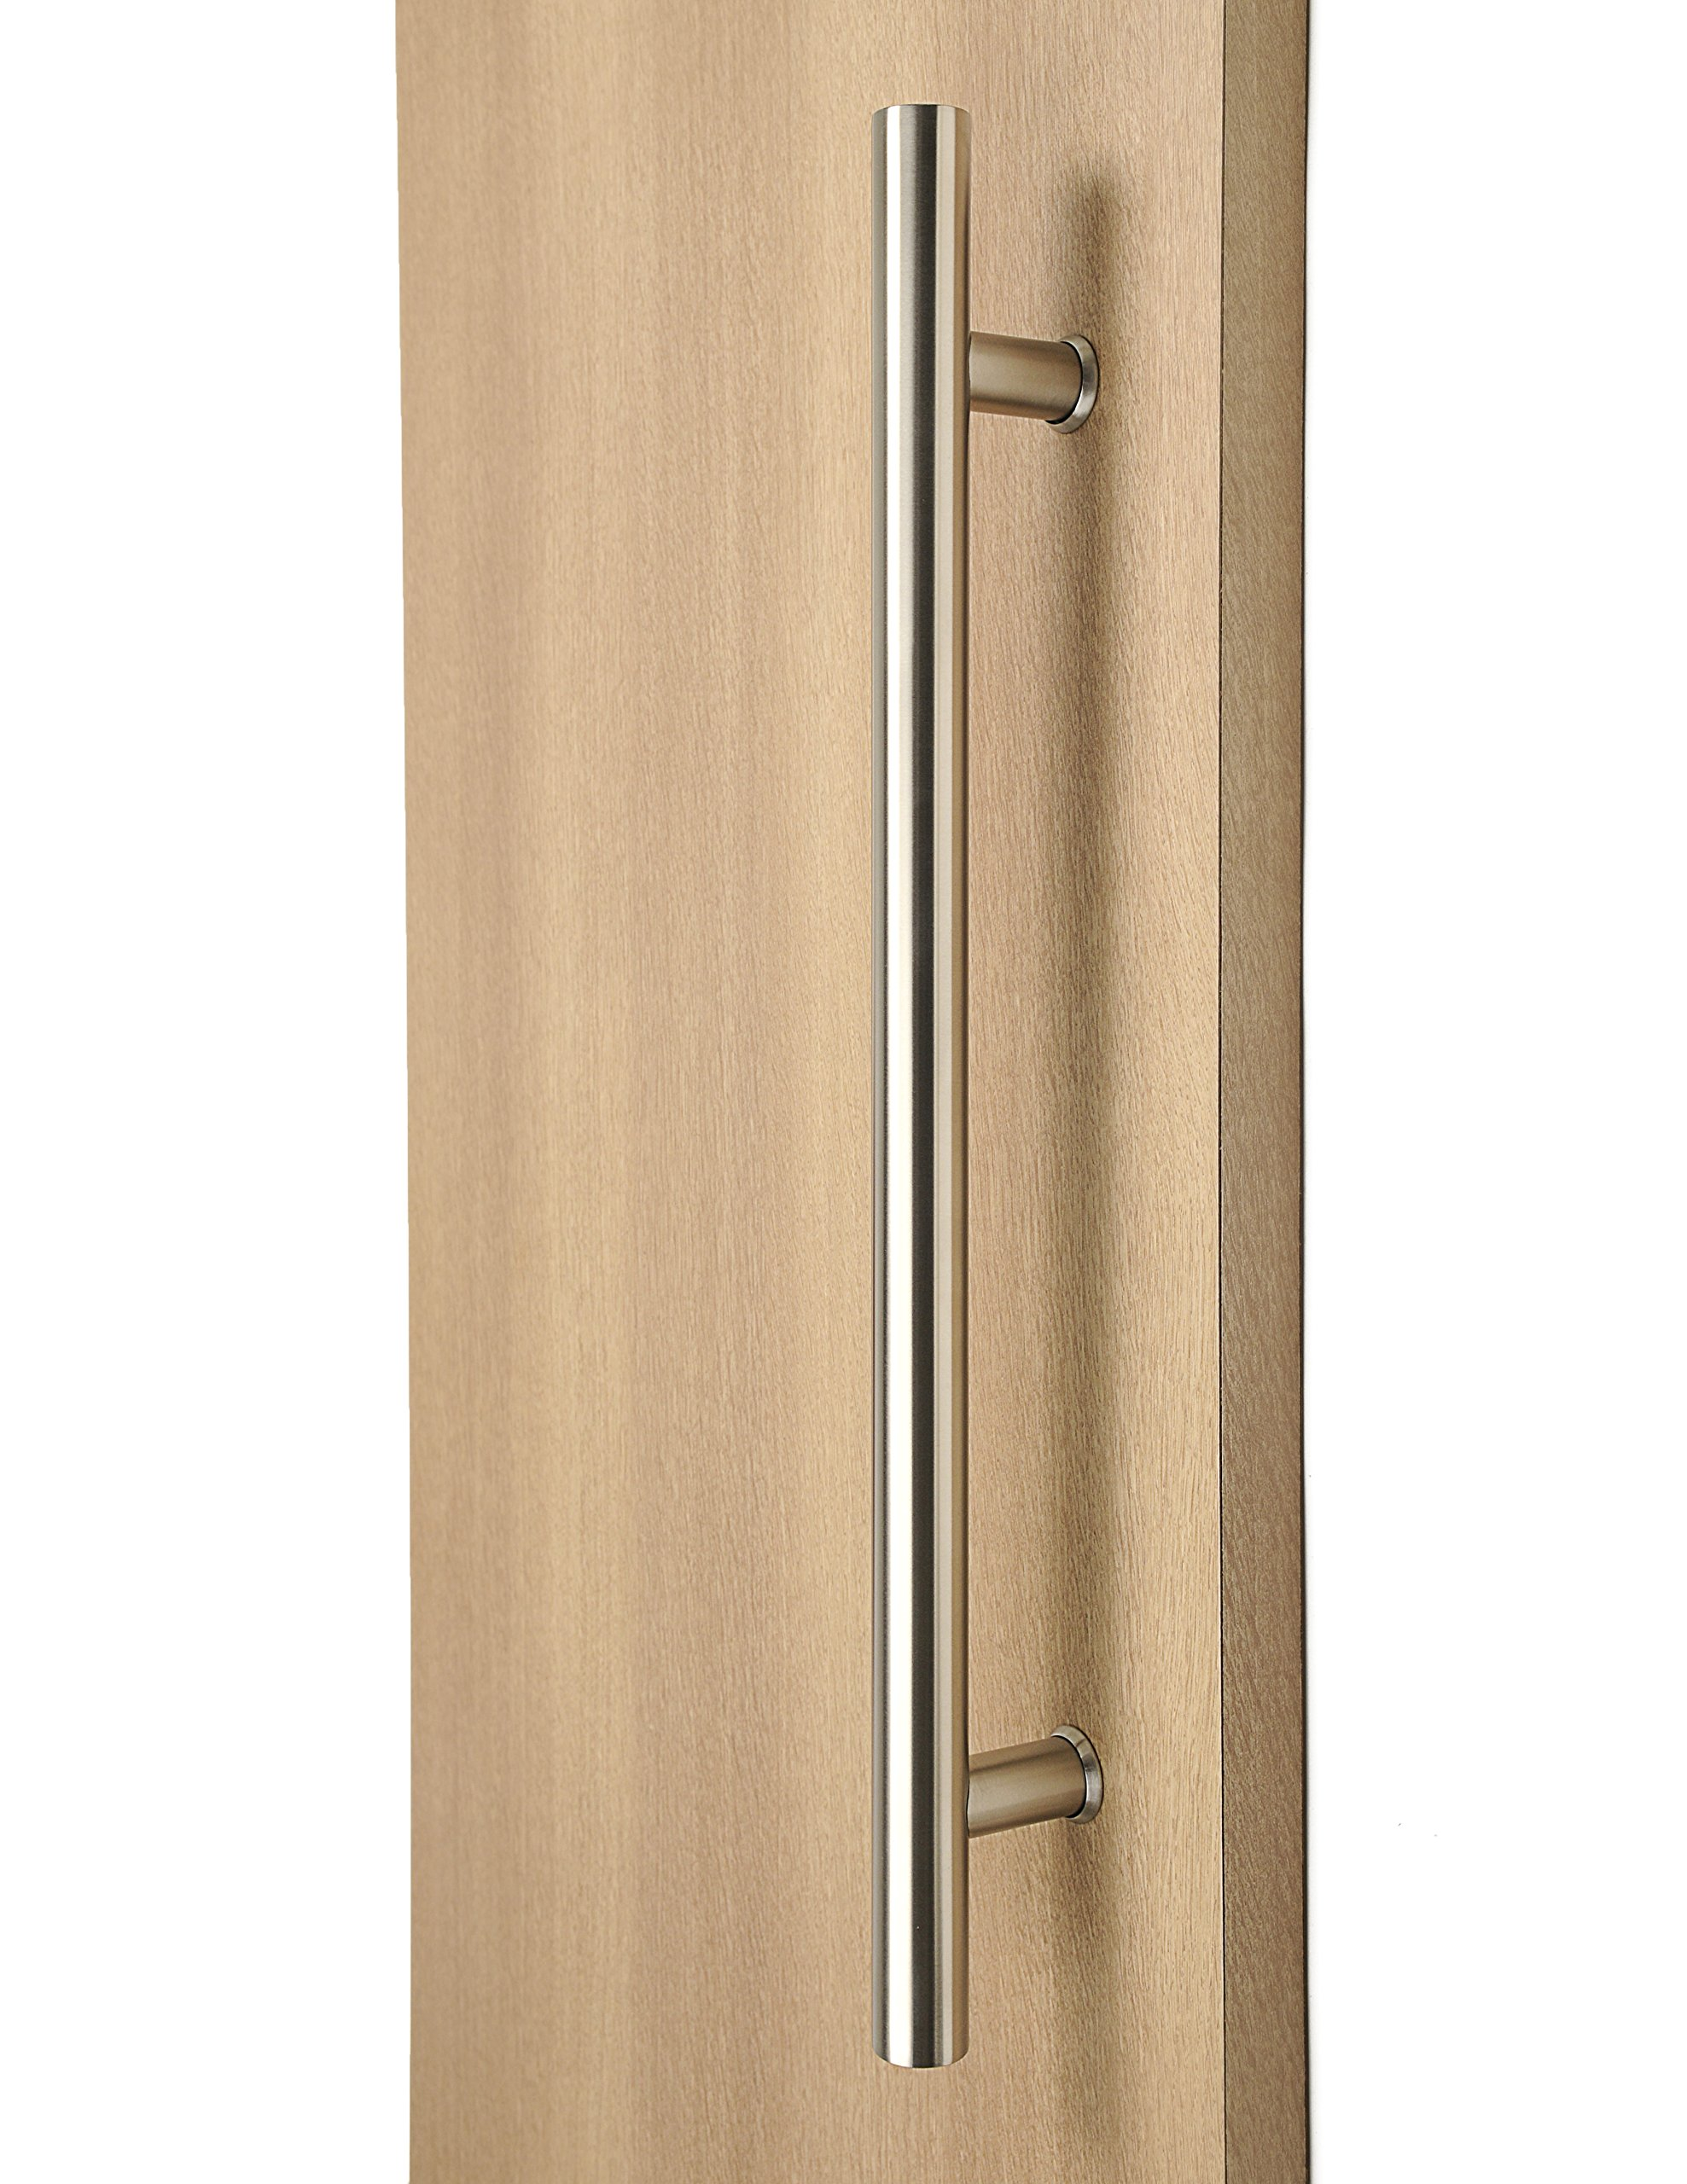 Modern & Contemporary Round Bar / Ladder / H-shape Style 1219mm / 48 inches Push-pull Stainless-steel Door Handle – Satin Brushed Finish